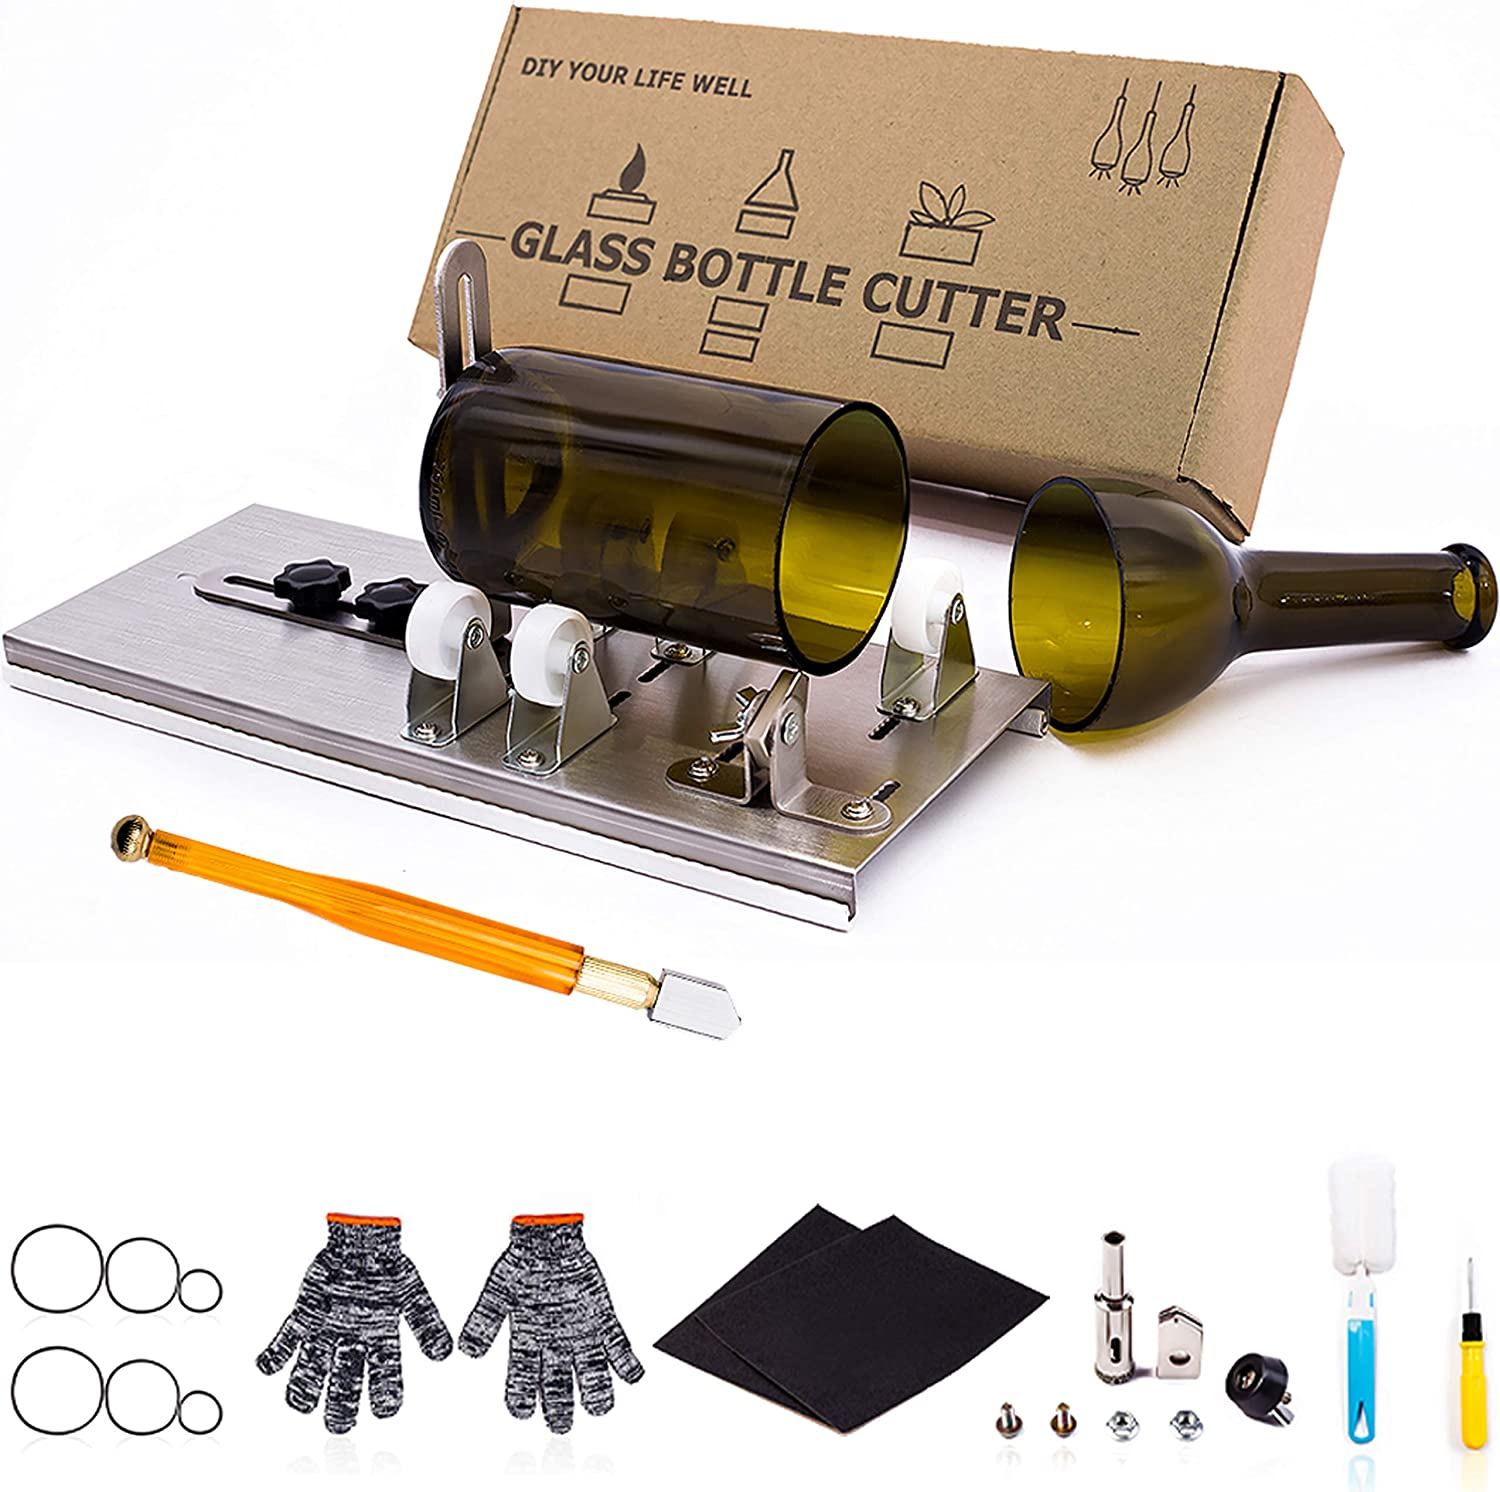 Glass Bottle Cutter Machine Craft Cutting Tool Recycle Kit Blade Accessories